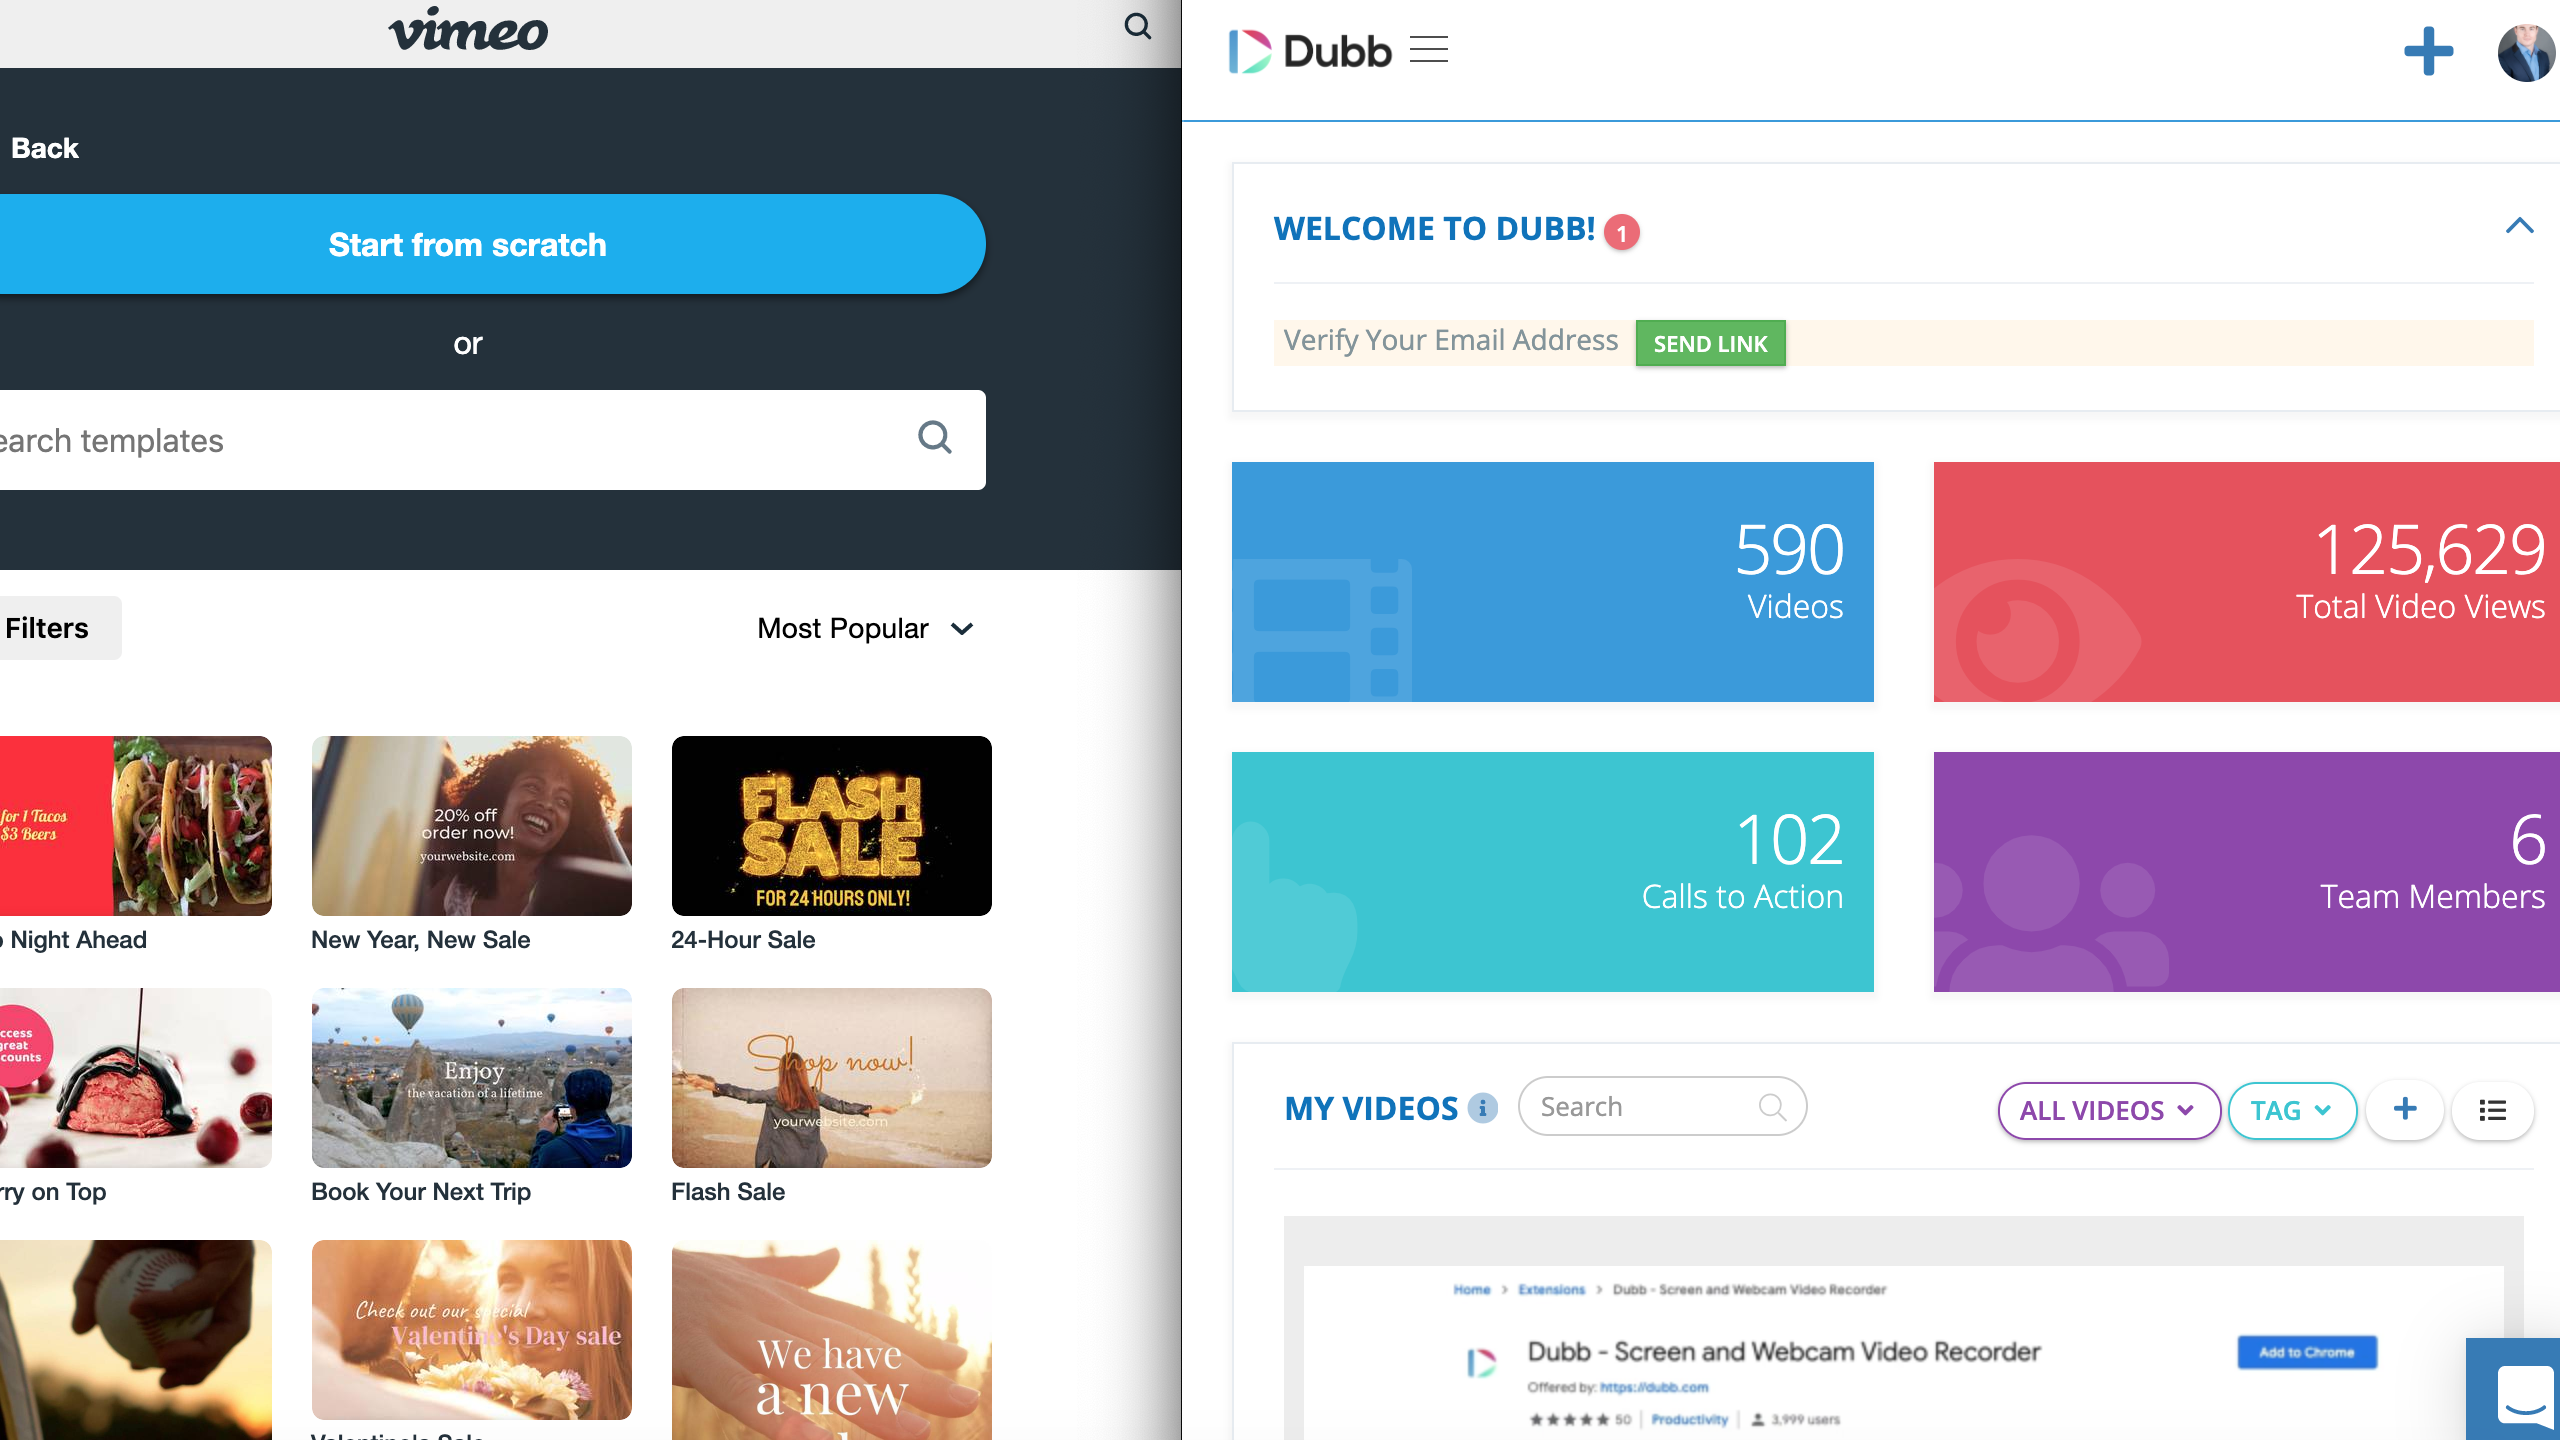 Vimeo features compared to Dubb Features